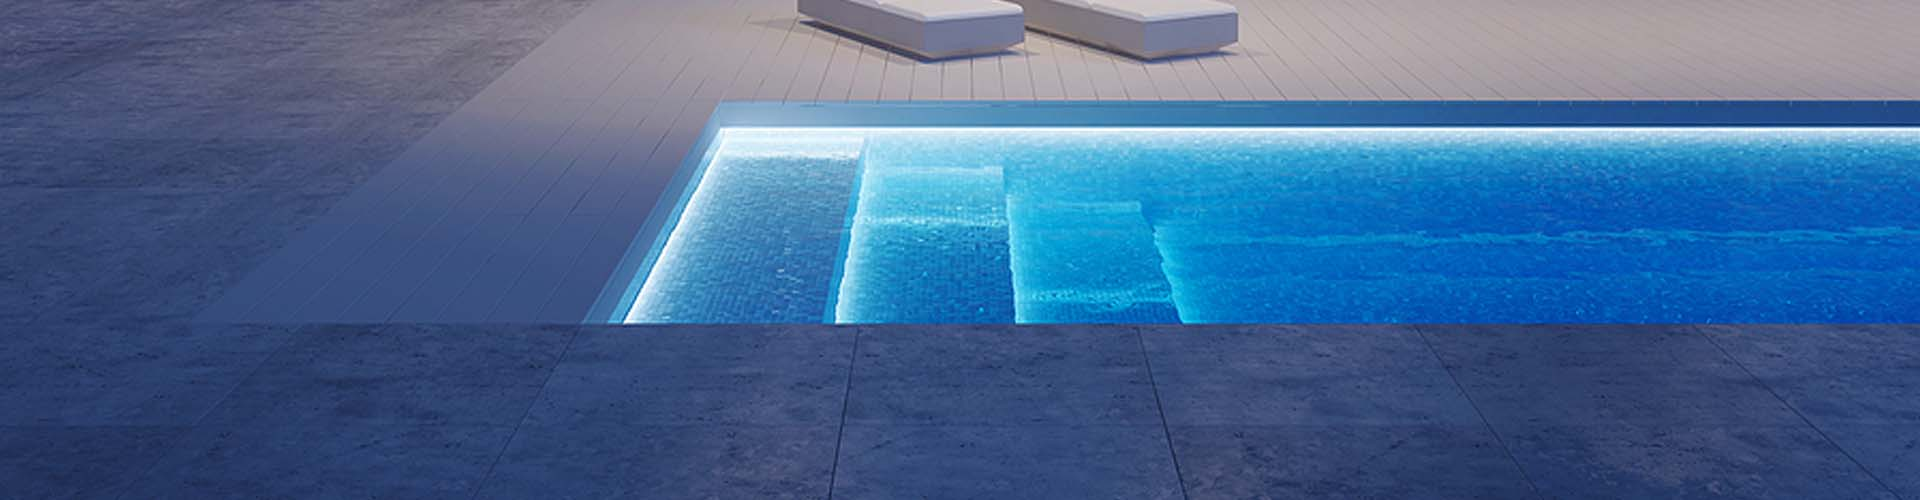 Pool_Beleuchtung